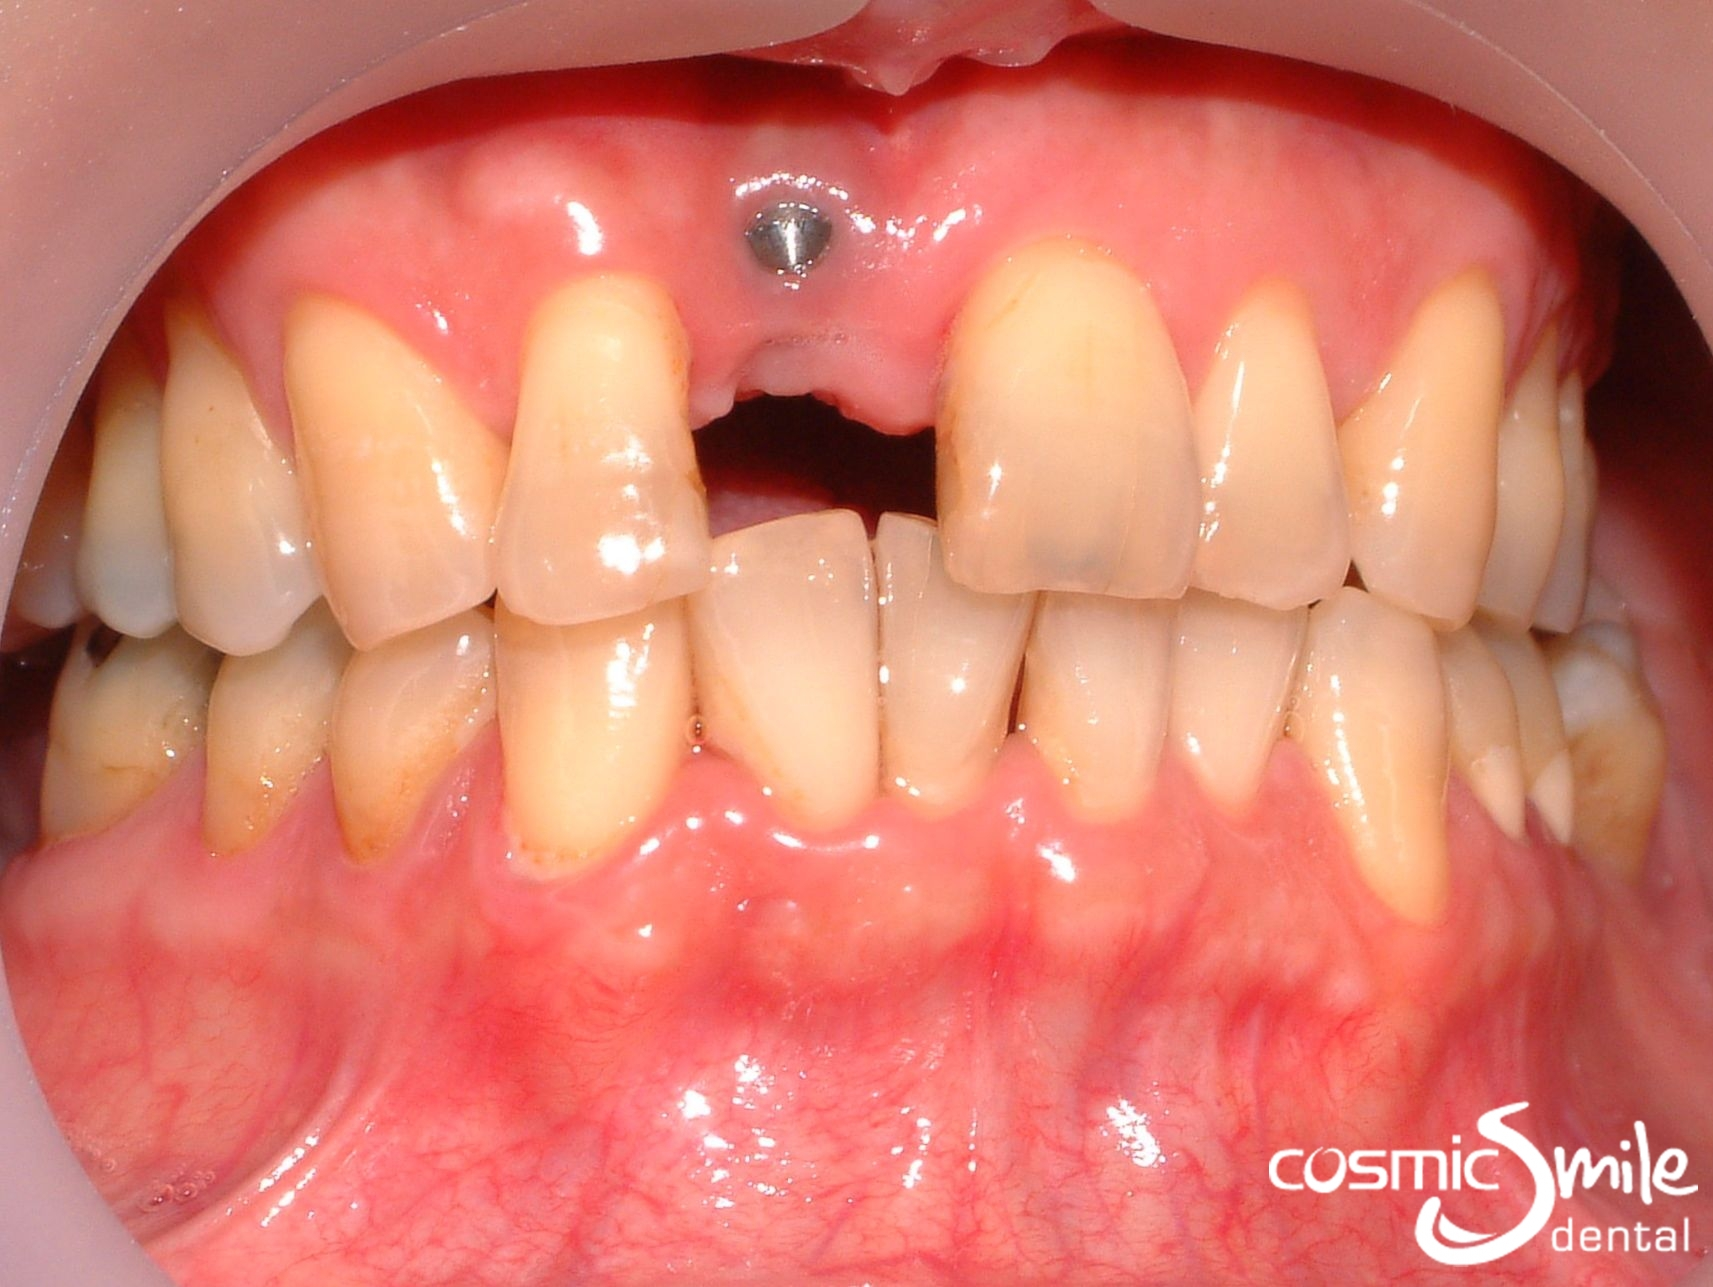 Teeth Implants In Sydney Before And After Cosmic Smile